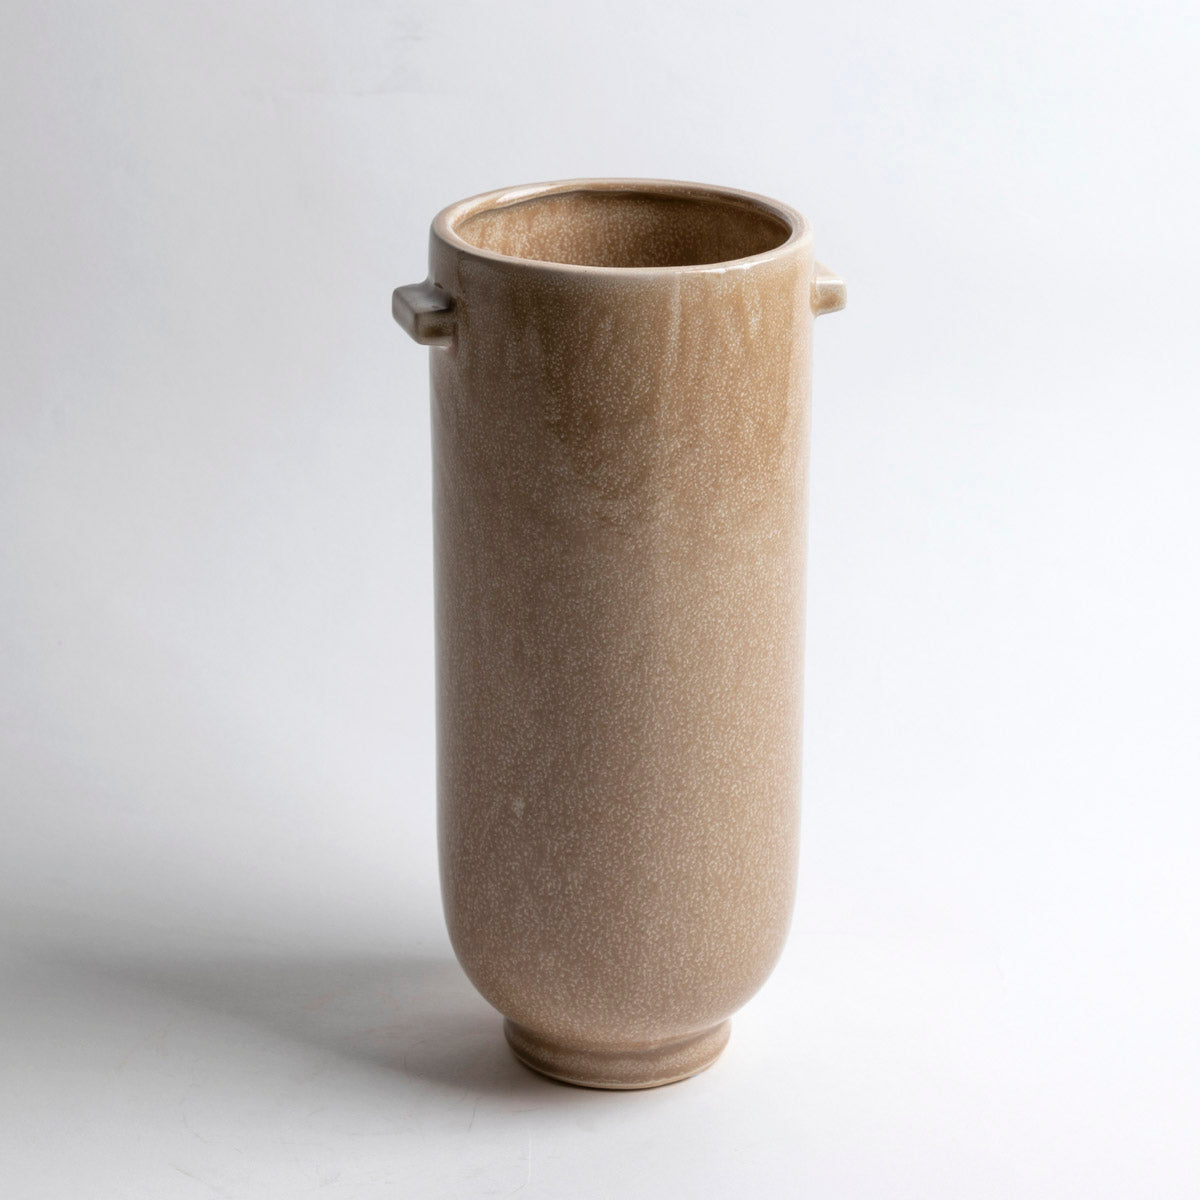 Sedona Vase available at Picnic SF